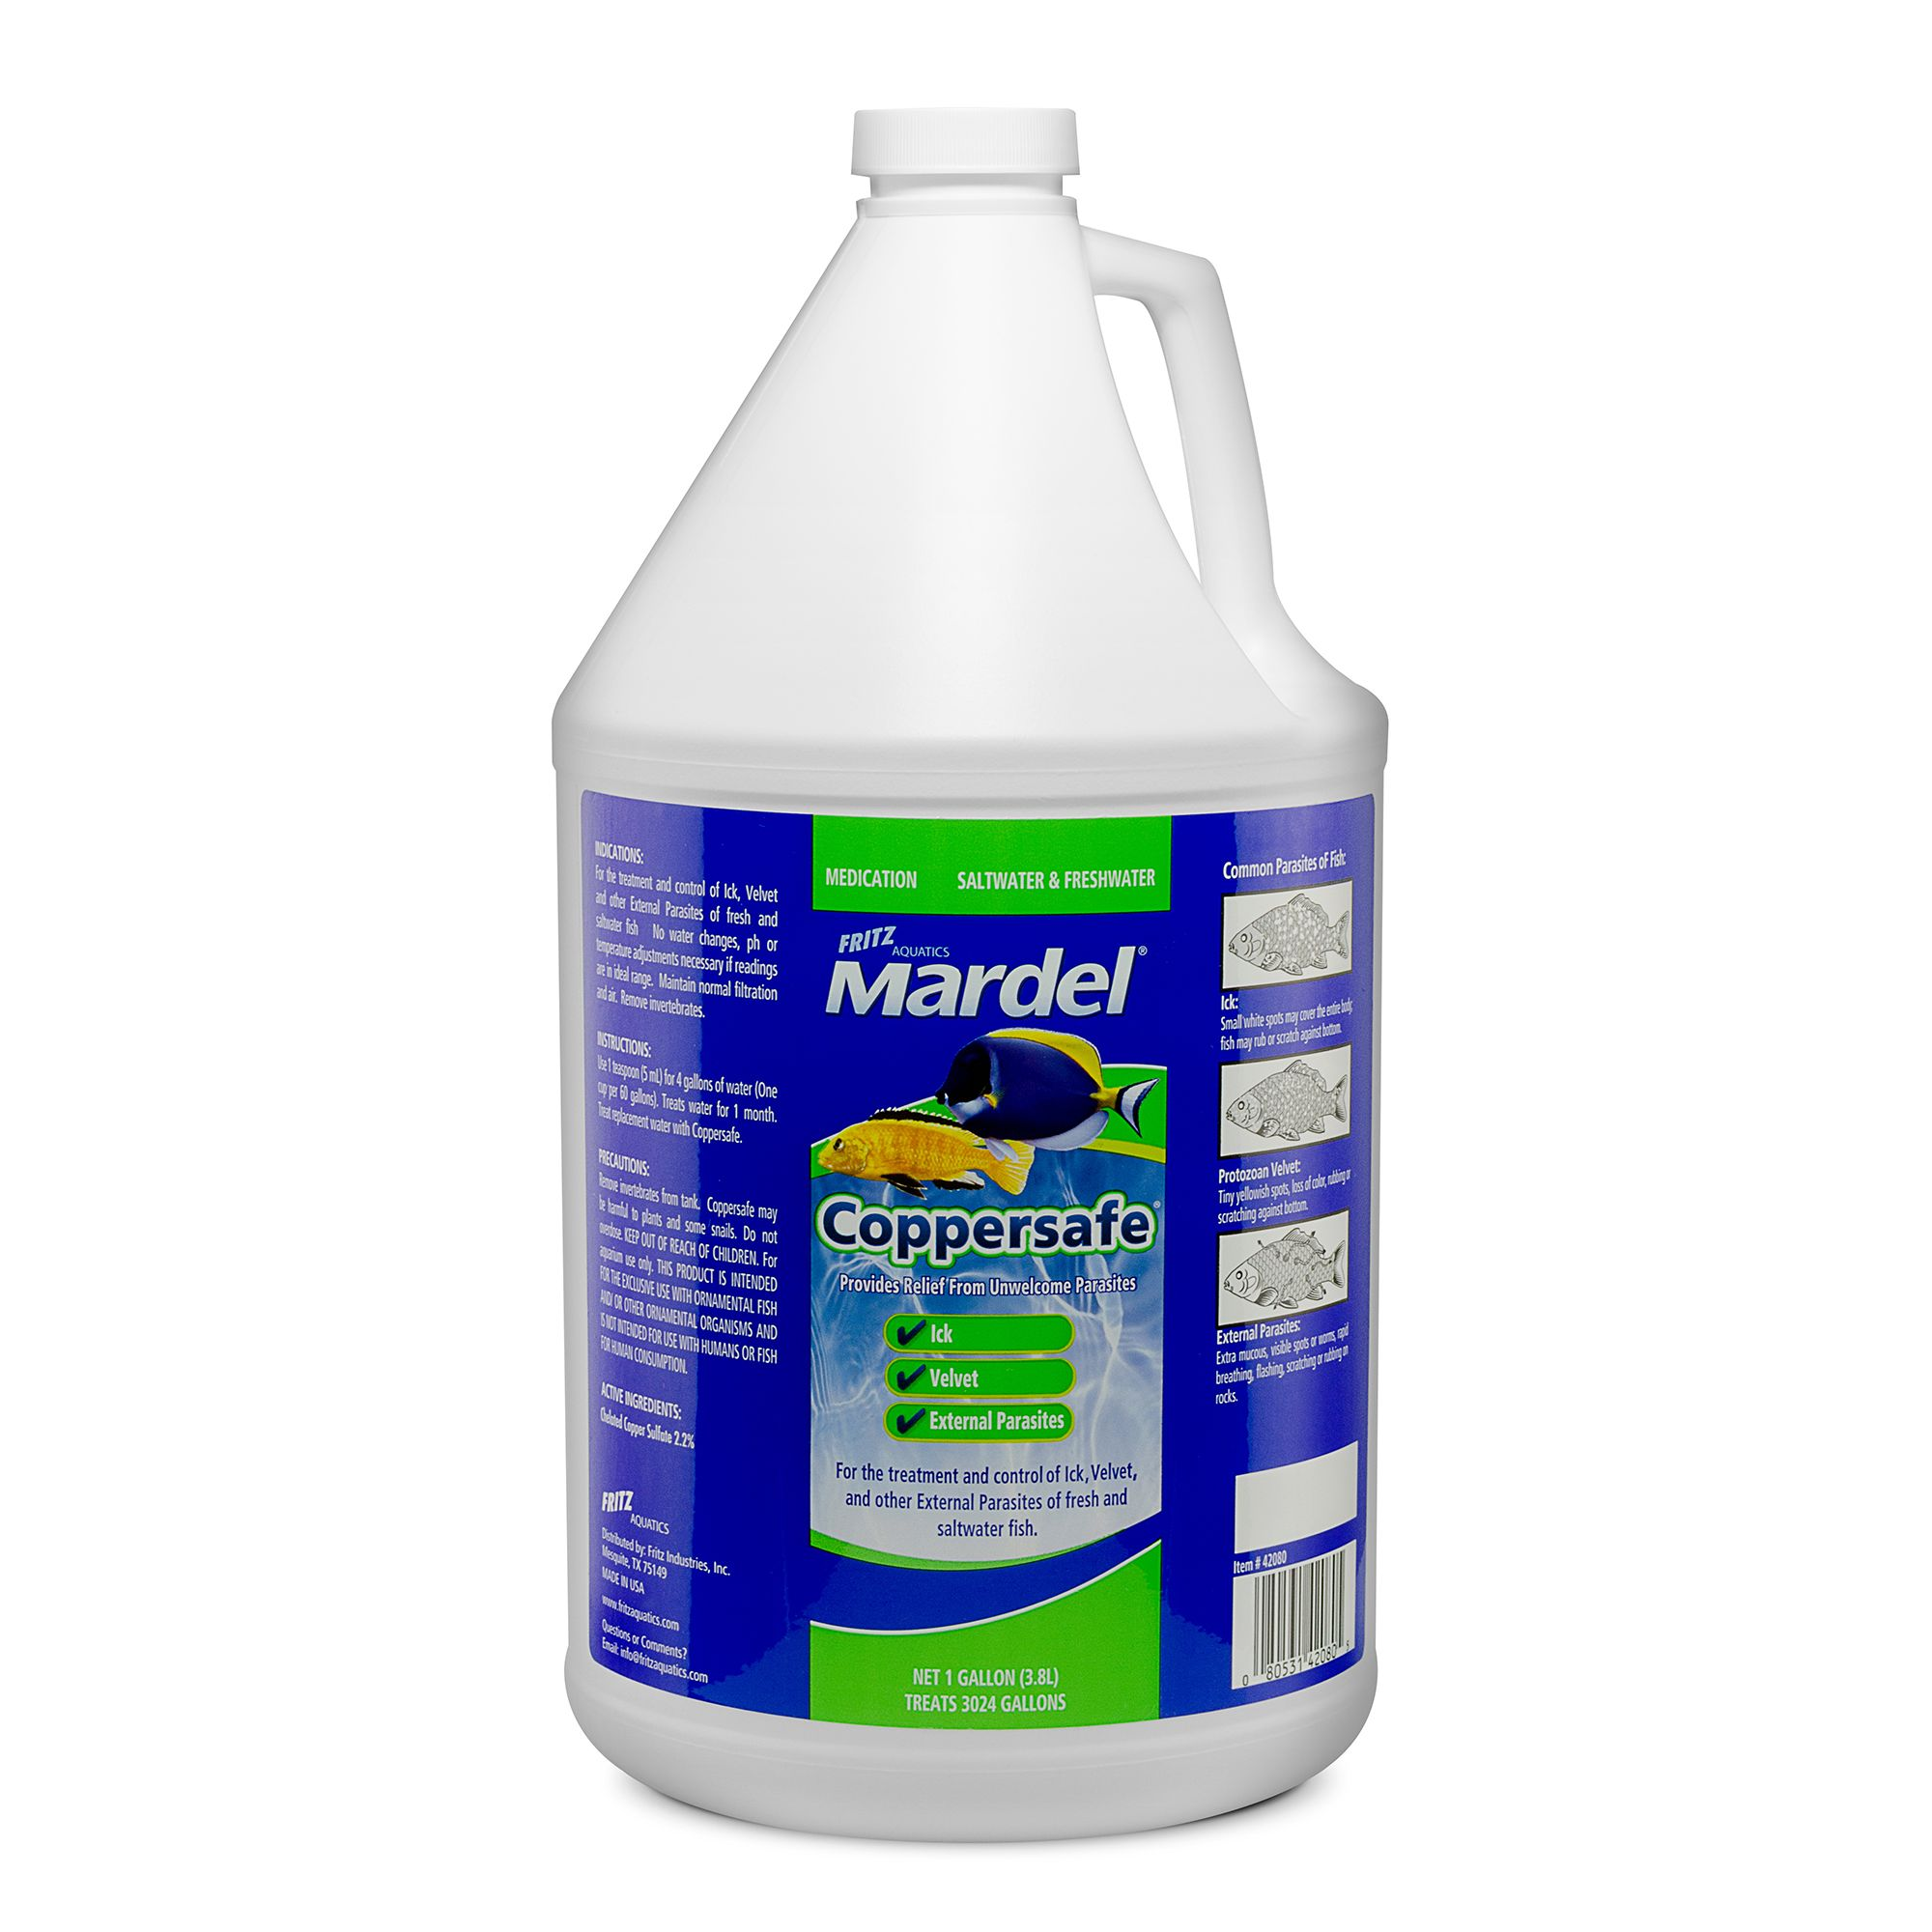 Mardel Coppersafe Disease Treatment Size 1 Gal